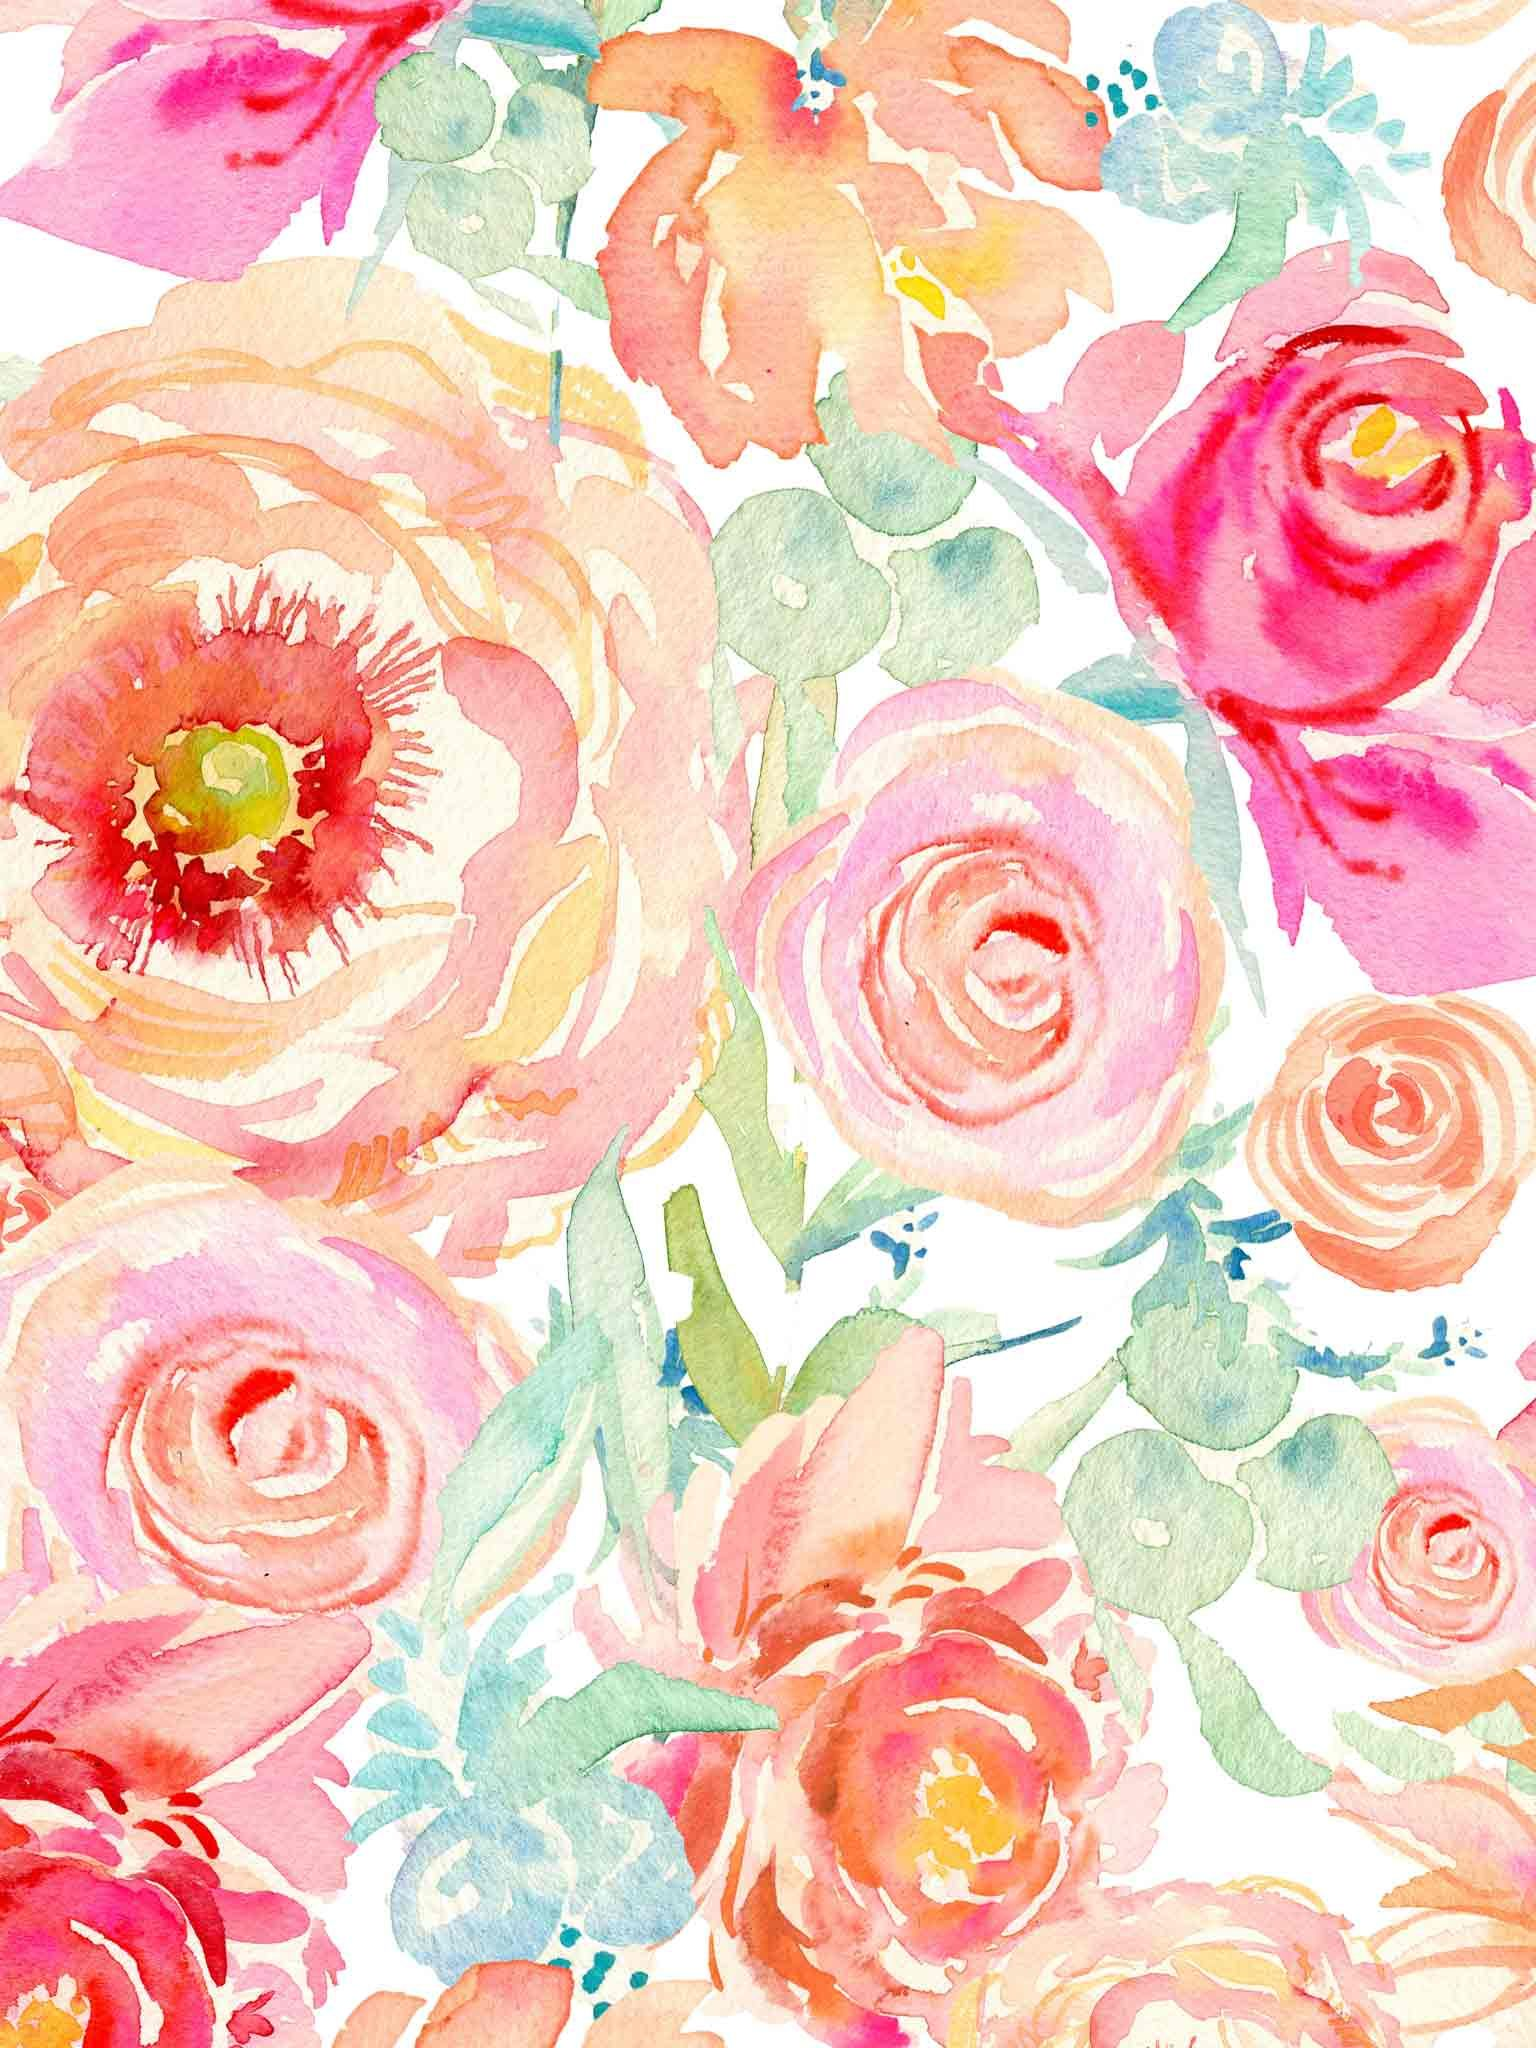 42d62ac81c031d766eab8ab9a6062d0e Iphone Wallpaper Floral Ipad